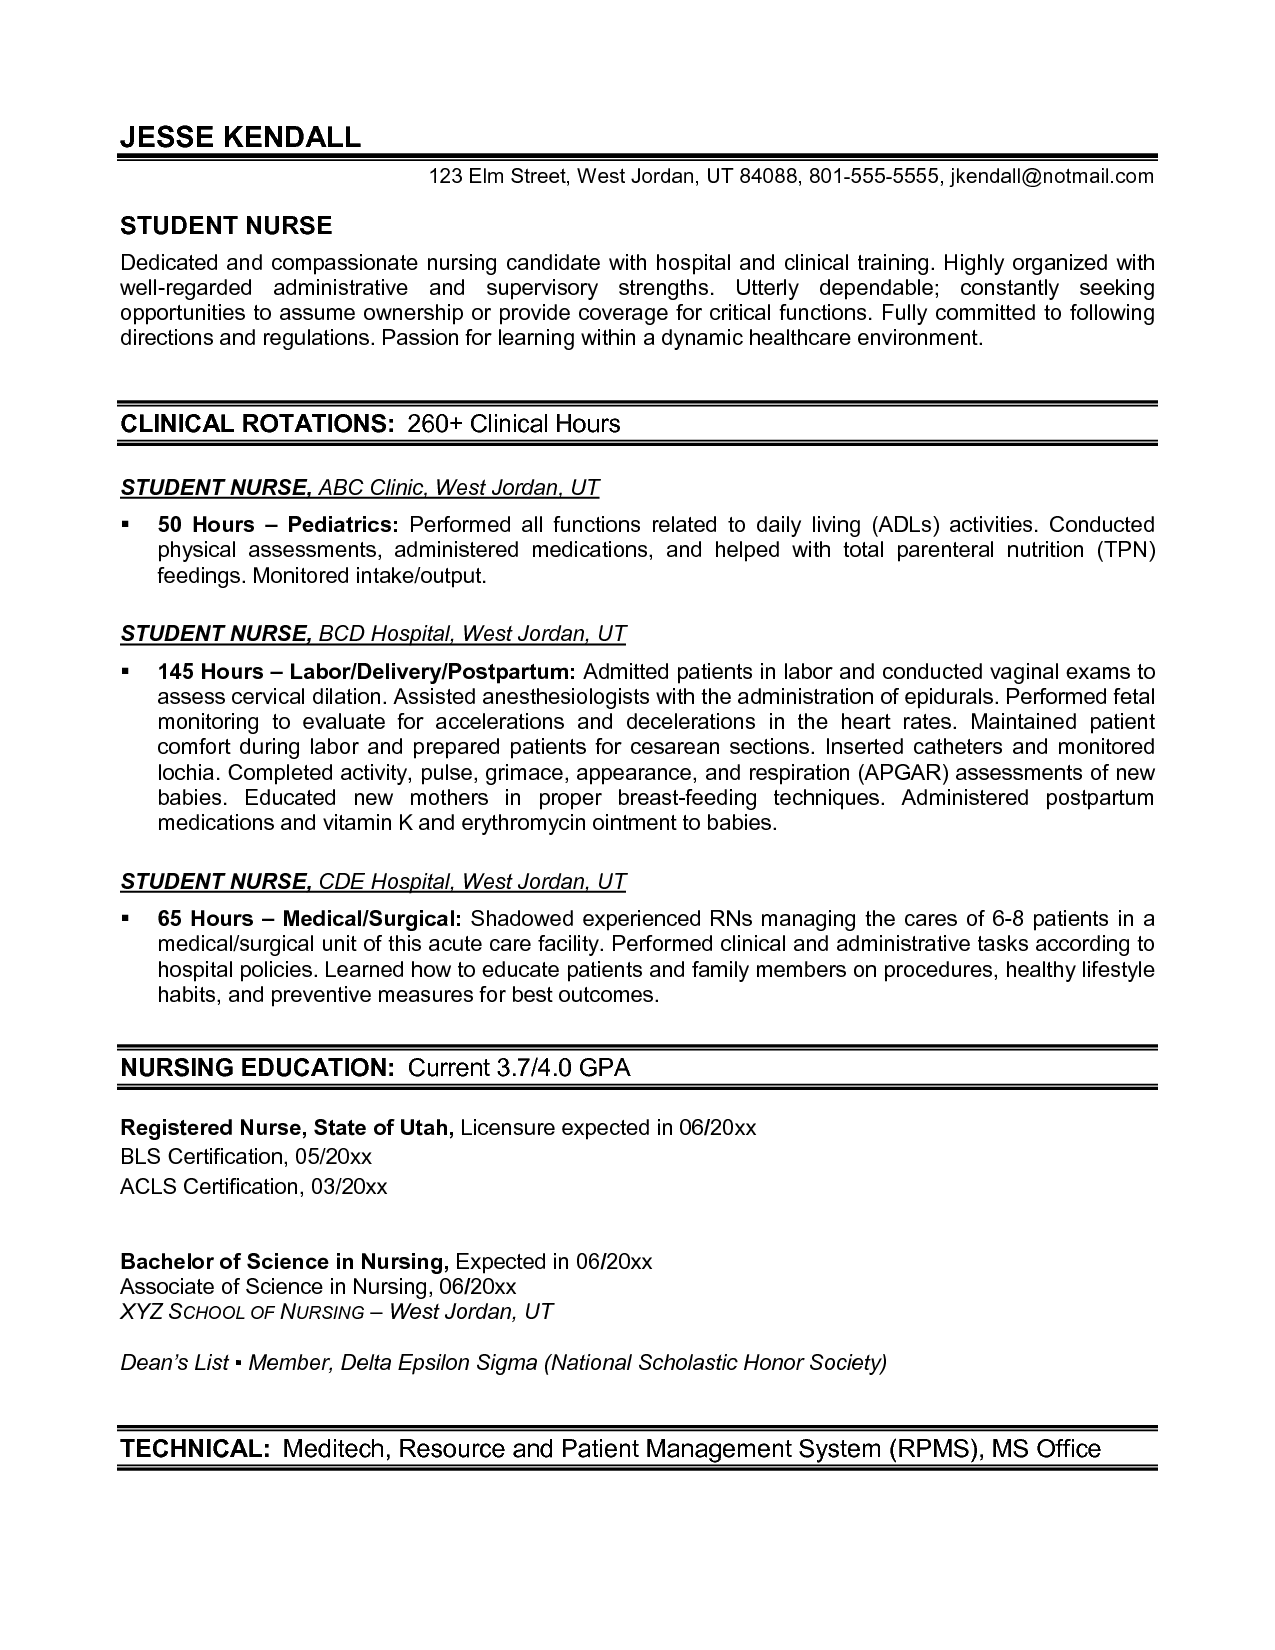 Captivating Resume Template Nursing Regarding Best Nursing Resume